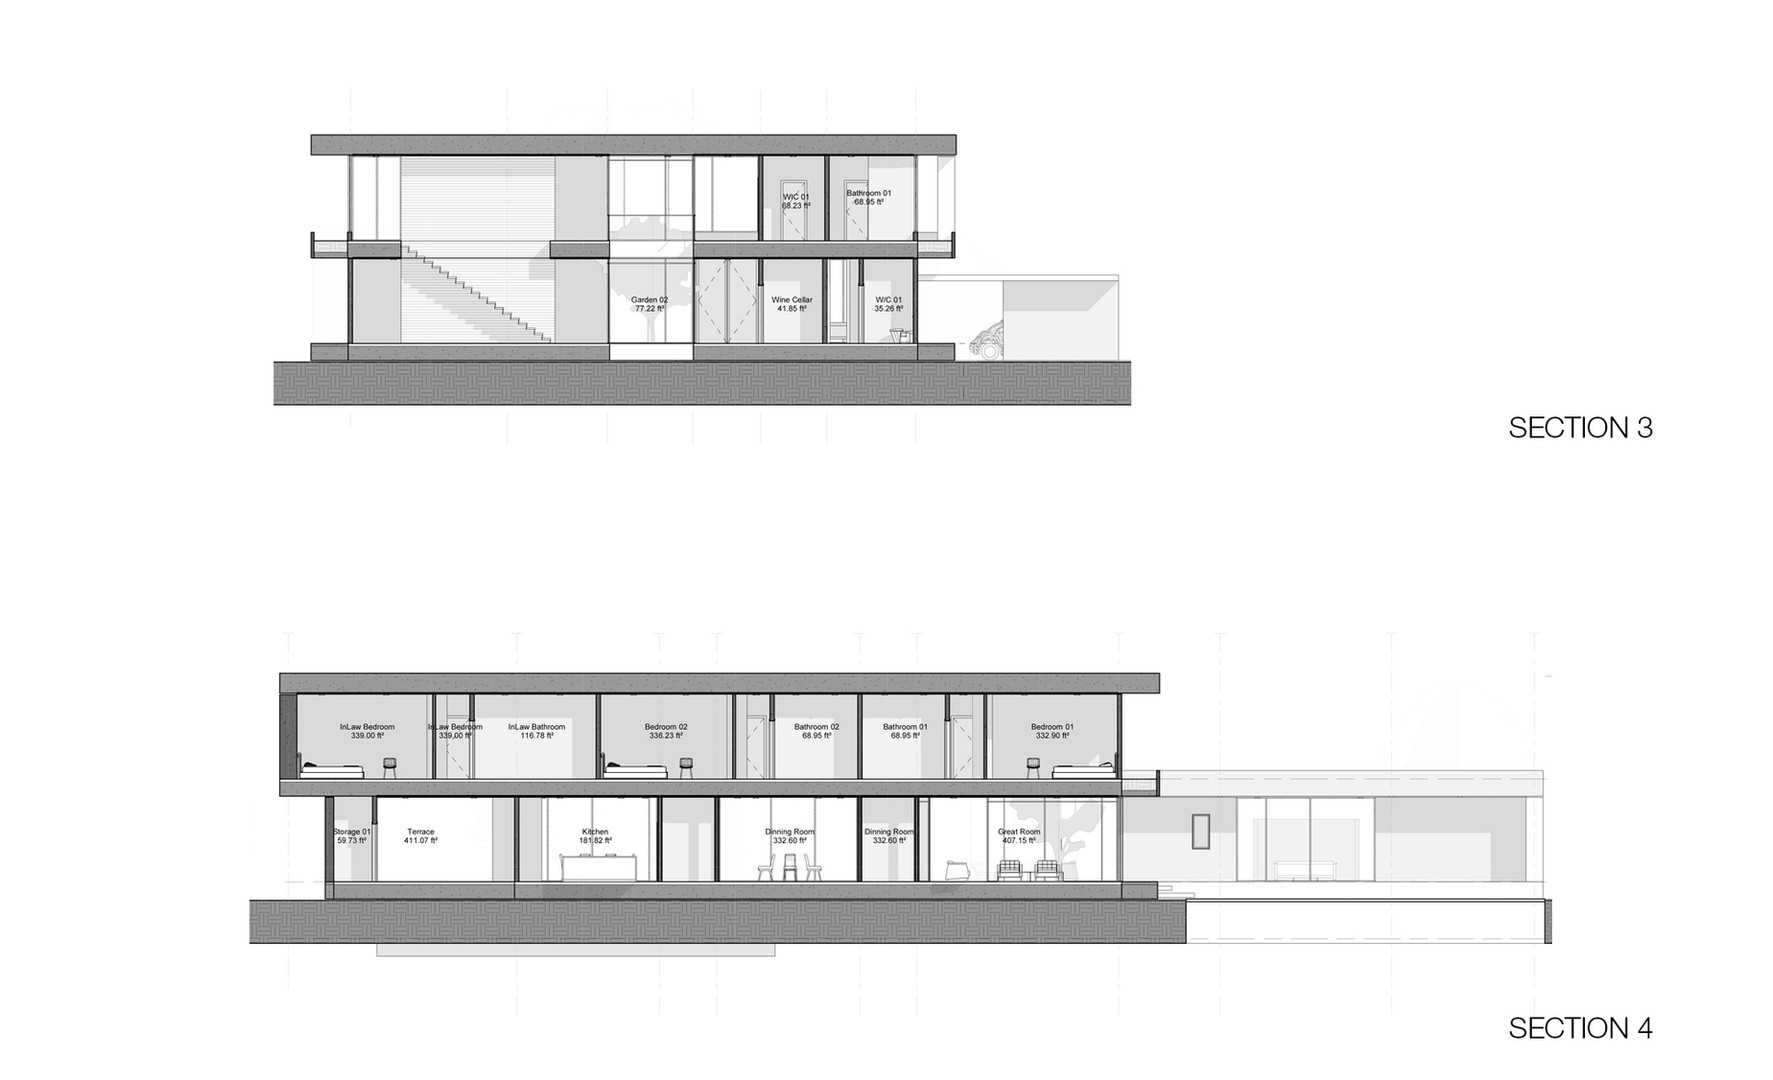 Sections_02_Frida_Picasso Homes.jpg